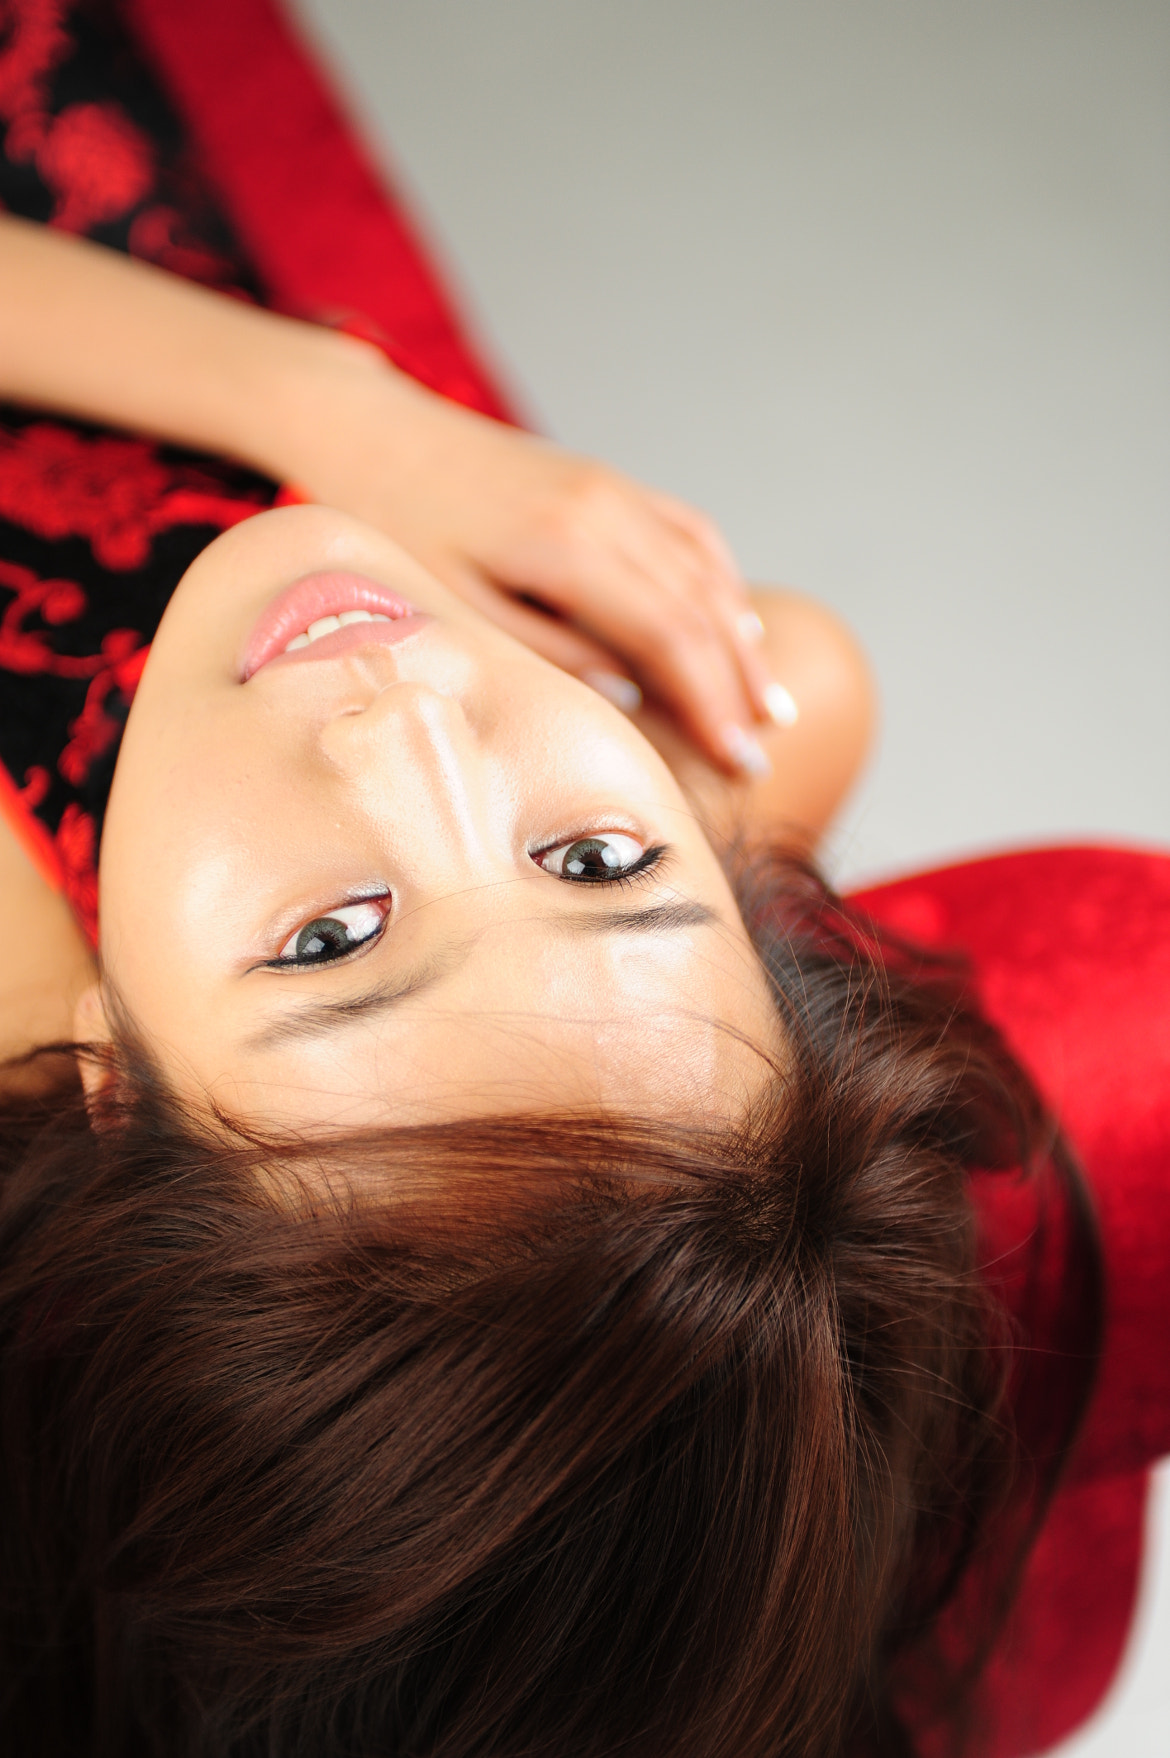 Photograph Korean model pictures by Tae-hyun Choi on 500px